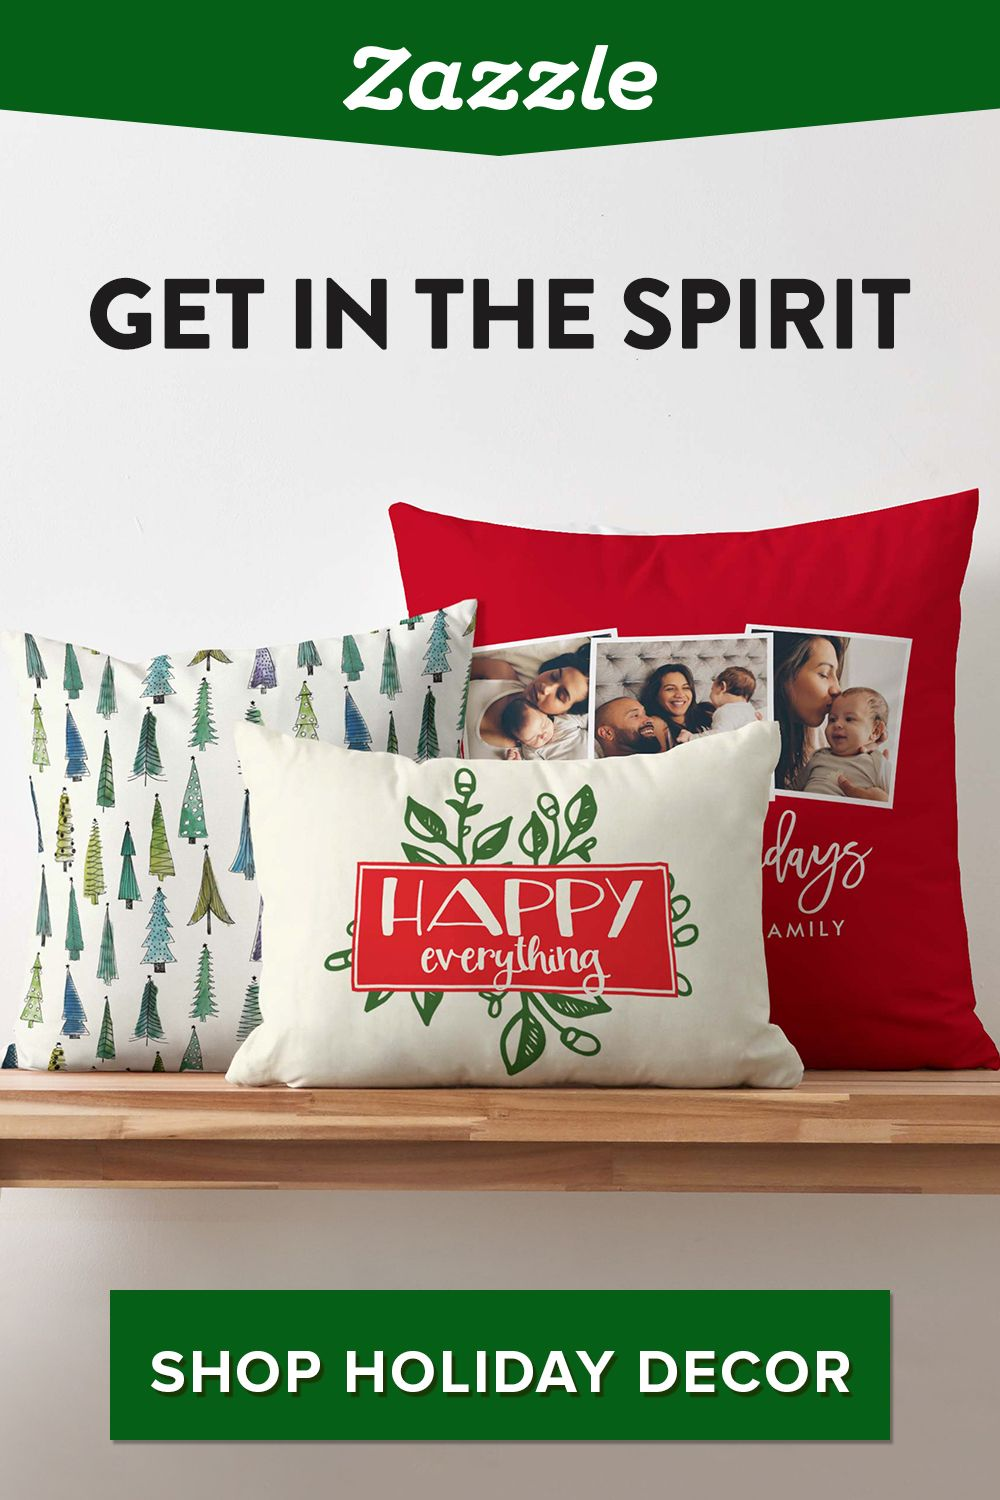 This year, support independent designers and find all your holiday needs on Zazzle. From ornaments to pillows, stockings to table runners, browse thousands of designs. Customize with text or photos.